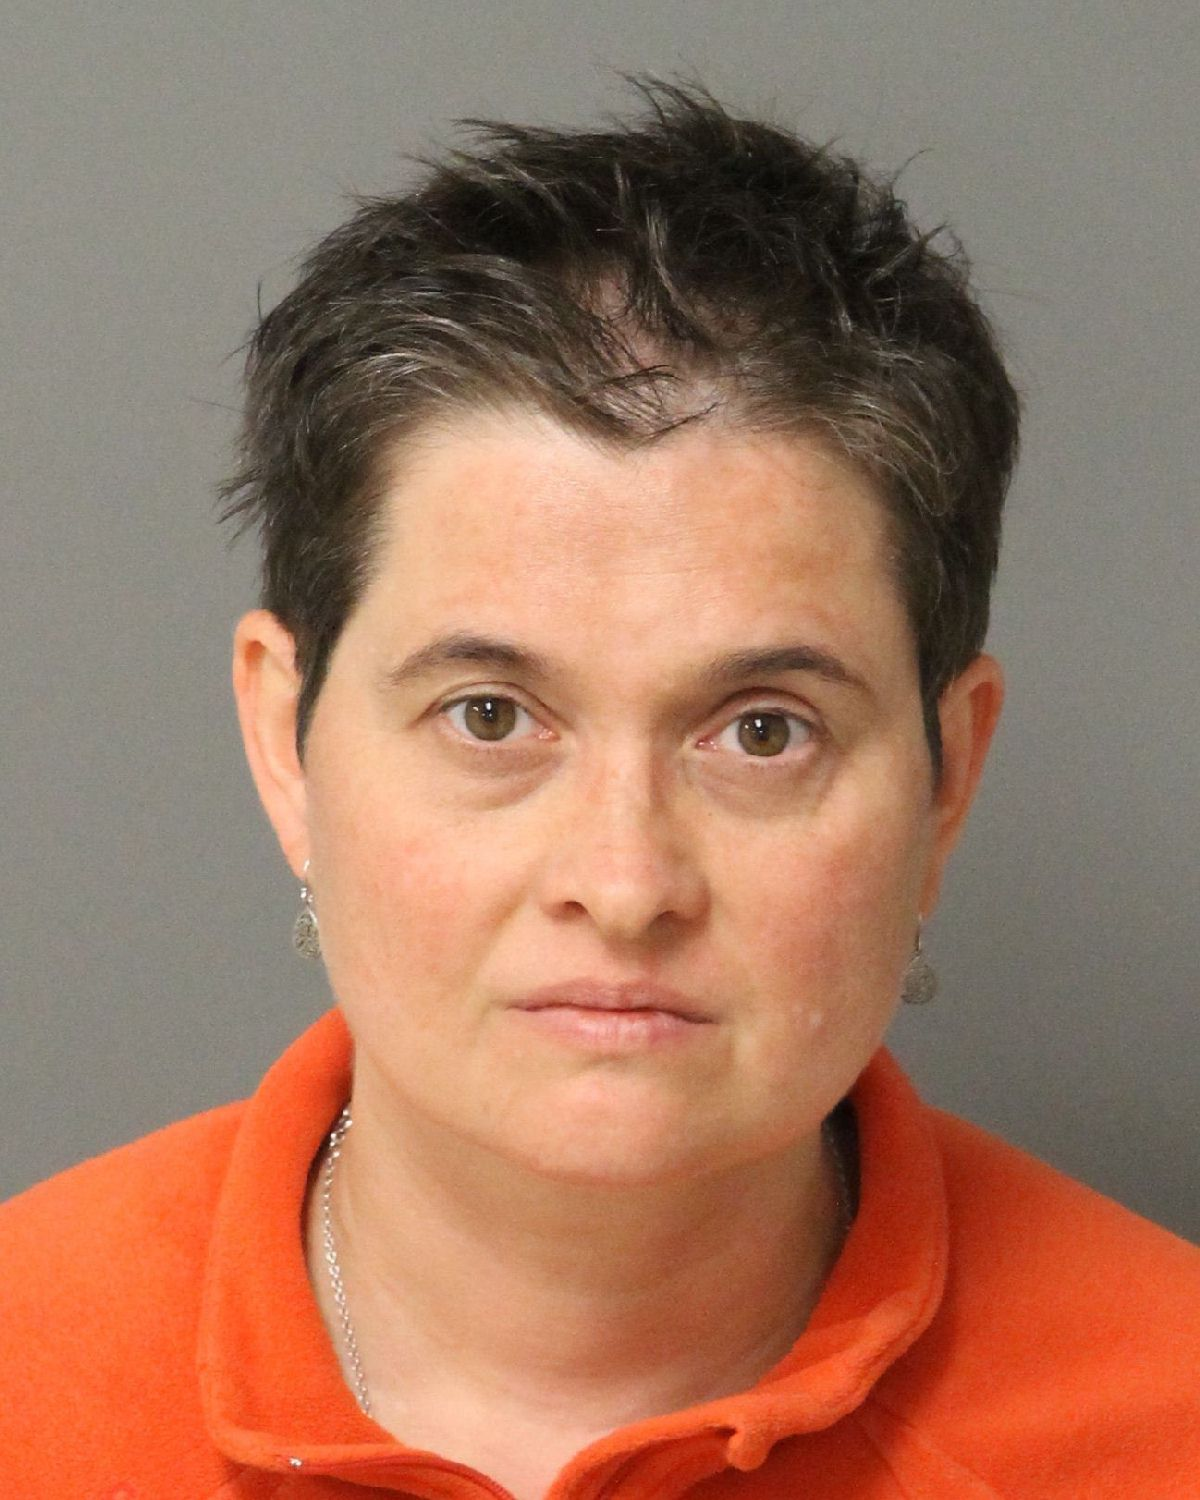 MARICHEVA GONZALEZ NATALIA Info, Photos, Data, and More / Wake County Public Records